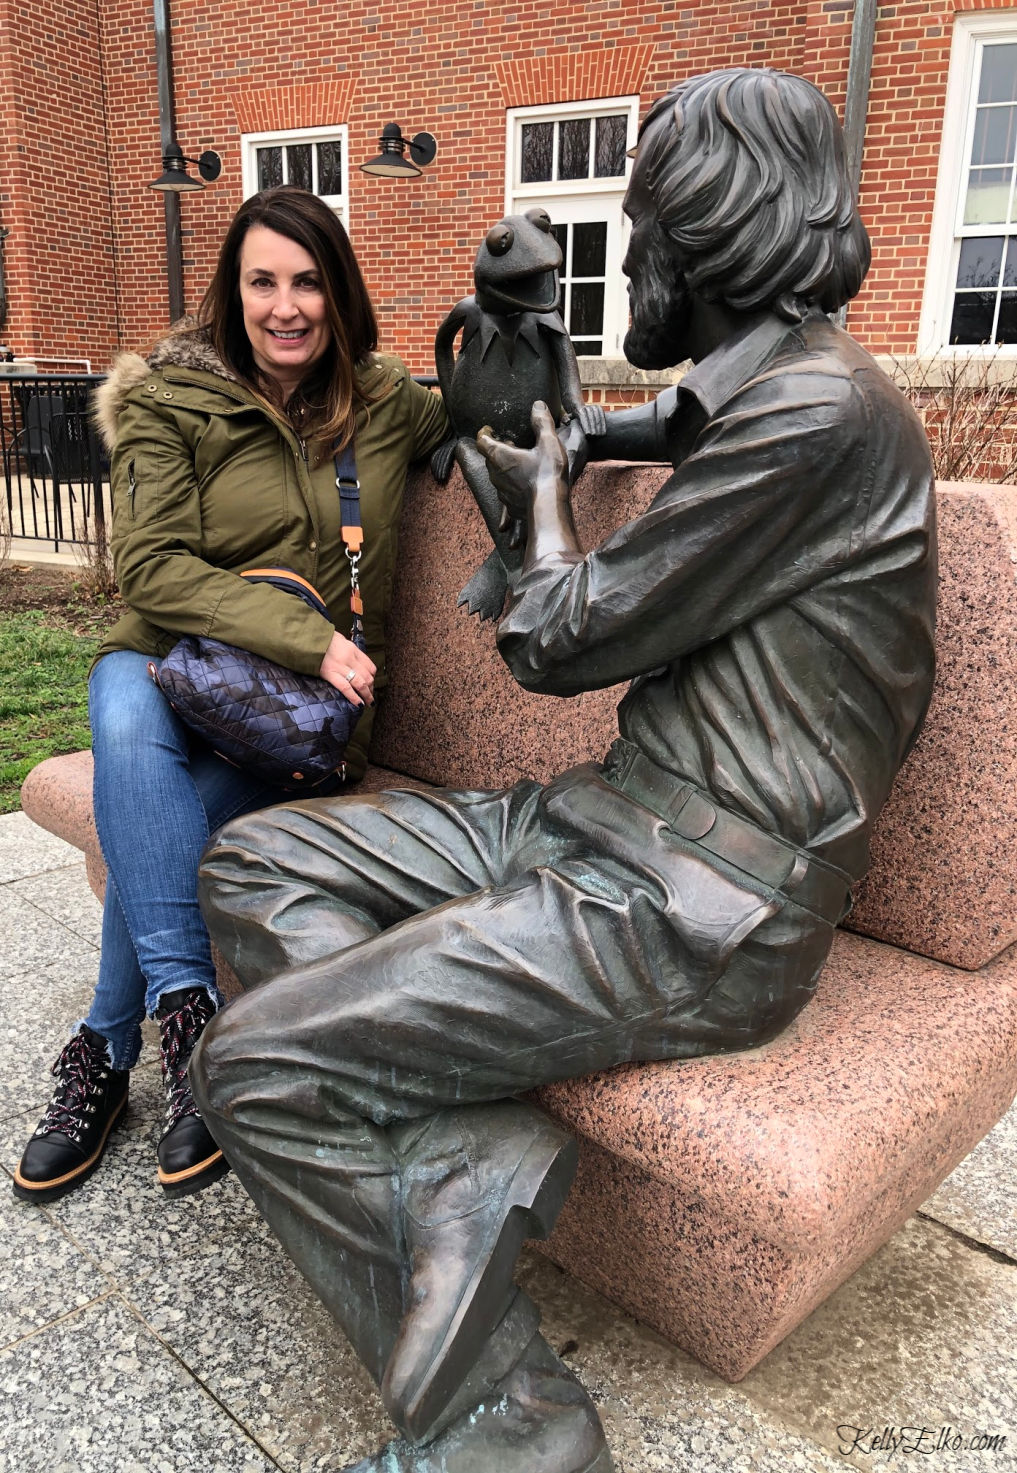 Did you know there is a statue of Jim Henson and Kermit the Frog on the University of Maryland campus! kellyelko.com #kermit #jimhenson #travel #muppets #maryland